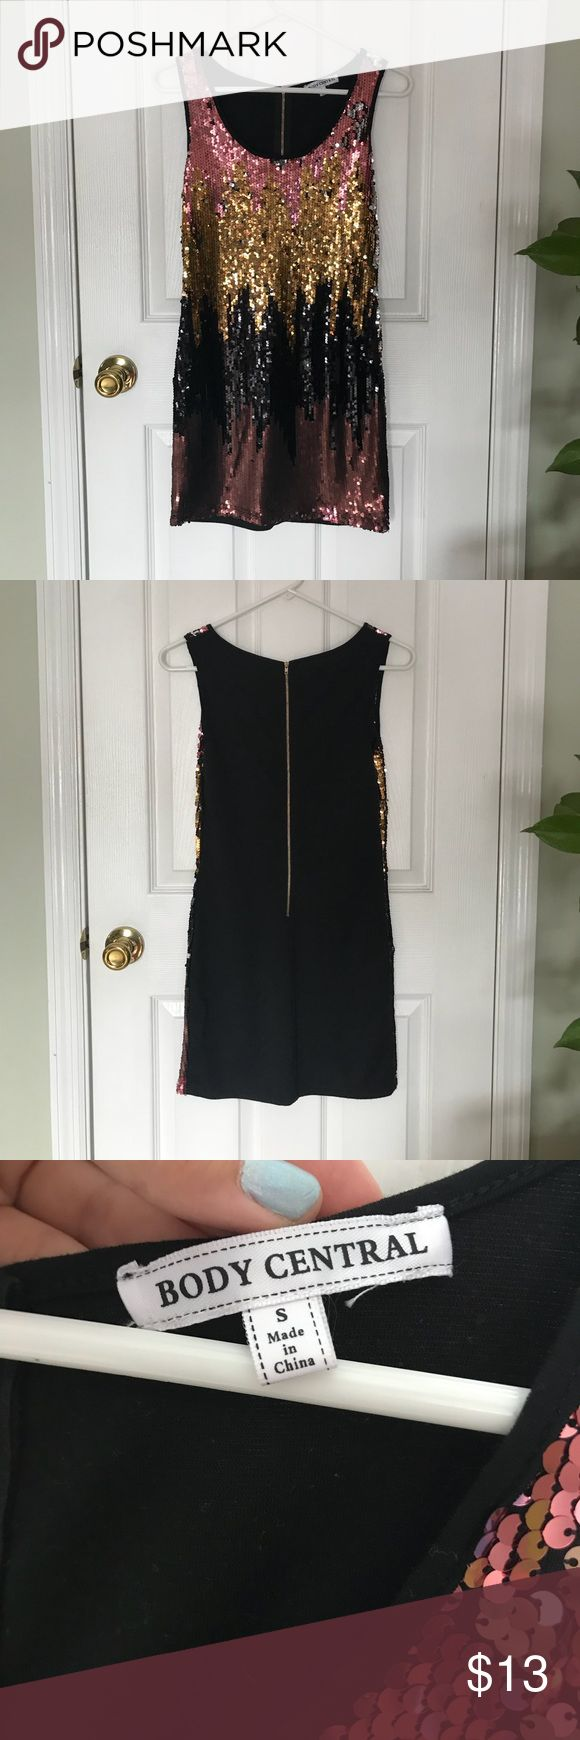 """Bodycon sequin """"ombré"""" dress- size S The perfect dress for a night out. I wore this one time for my sweet sixteen and it was perfect. Eye catching dress! Body Central Dresses Mini"""